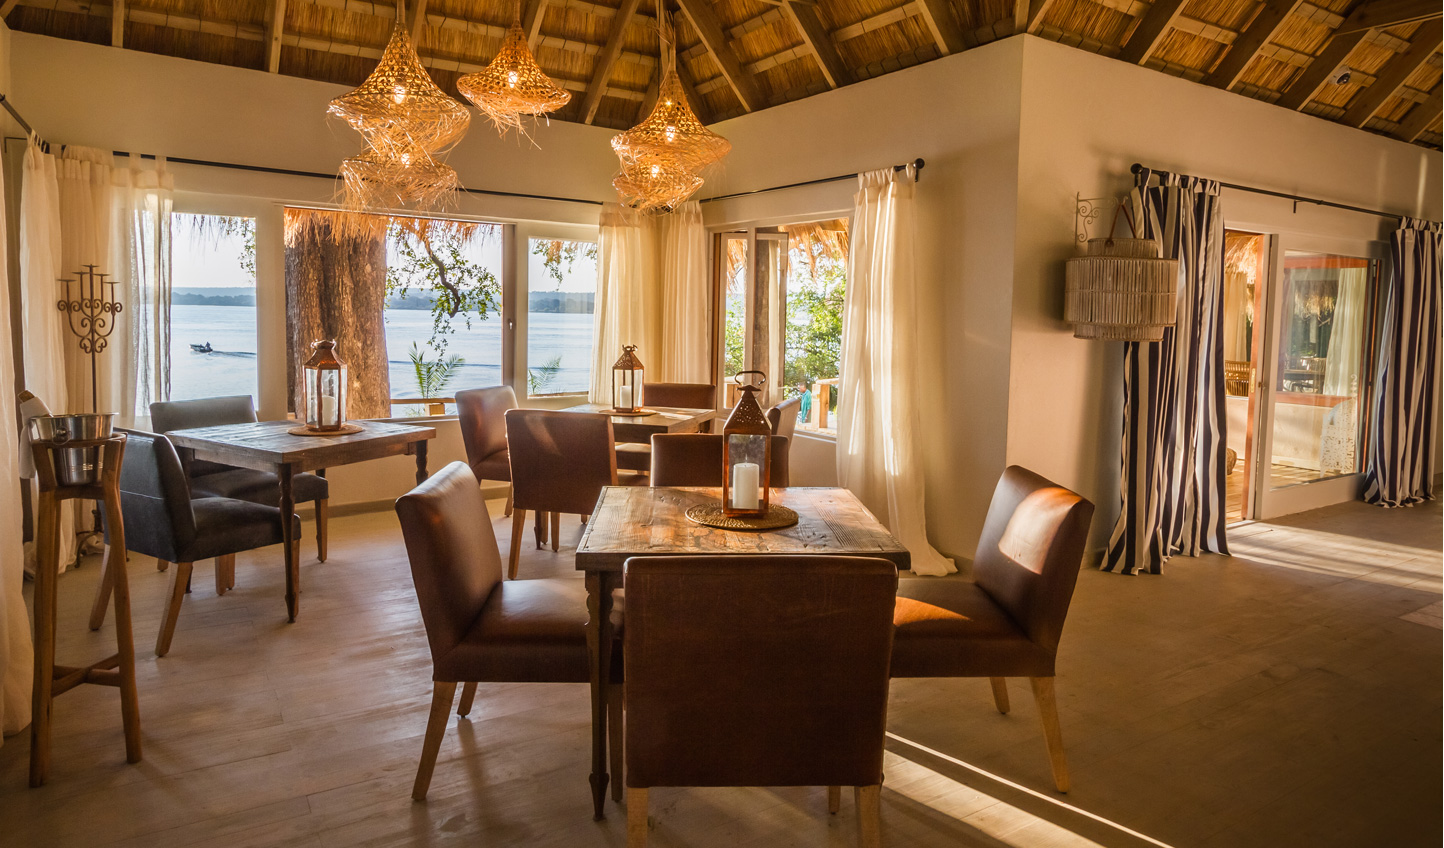 The comfortable dining room